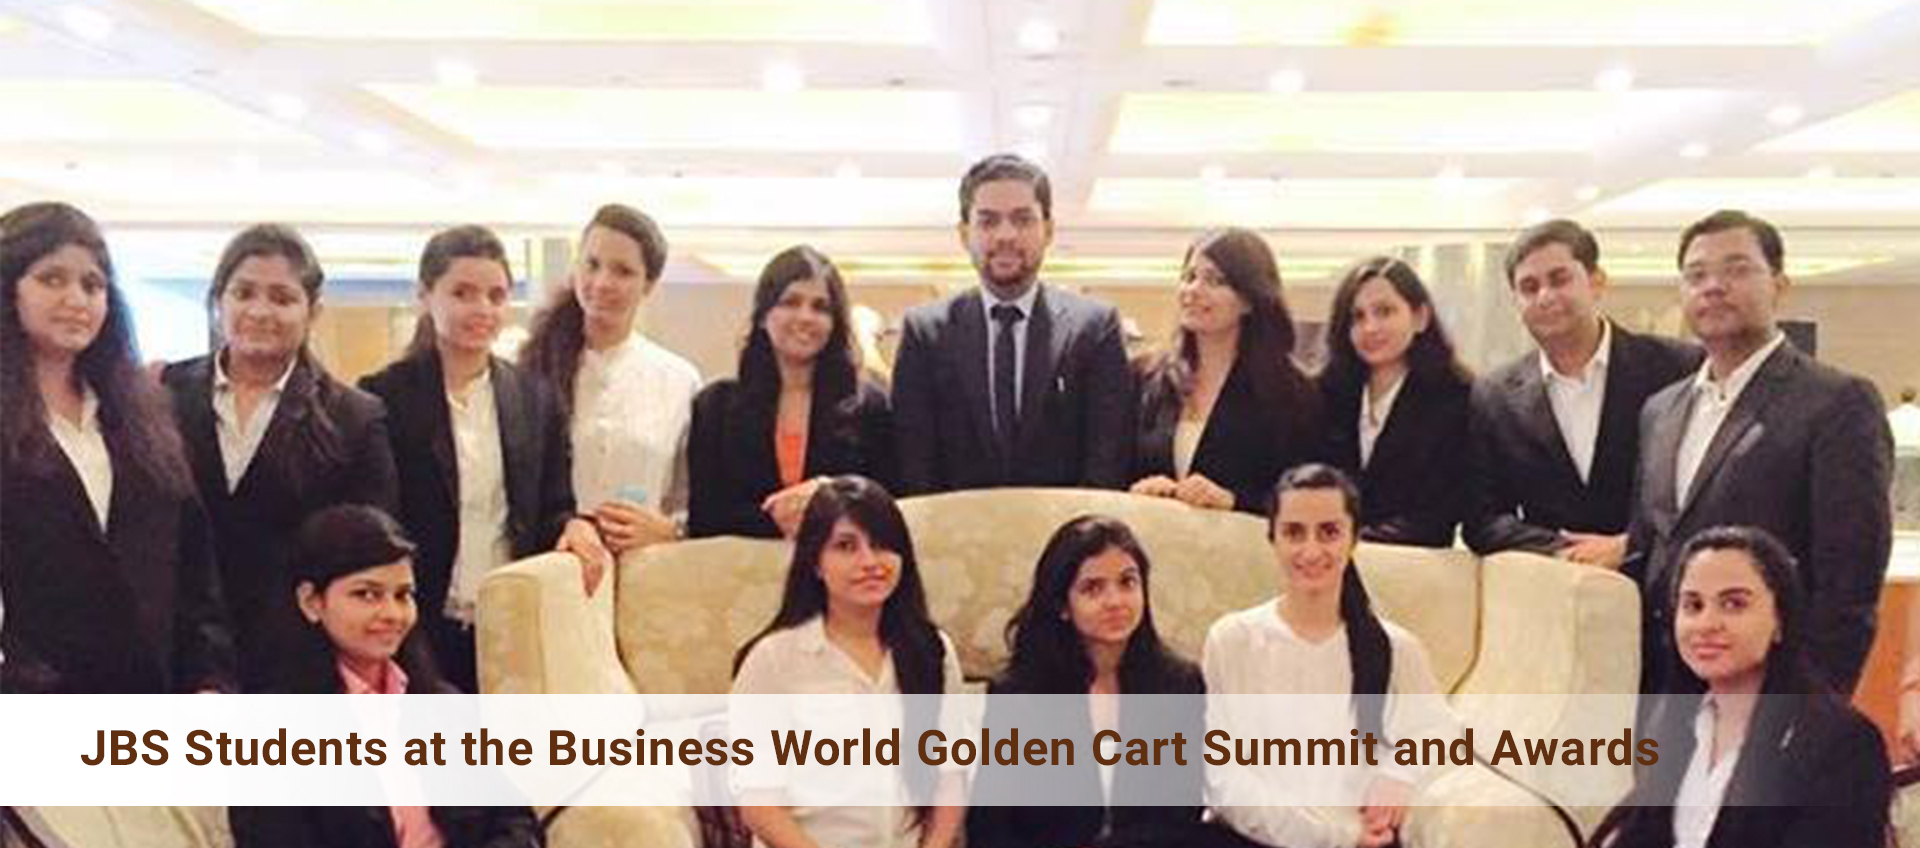 JBS Students at the Business World Golden Cart Summit and Awards